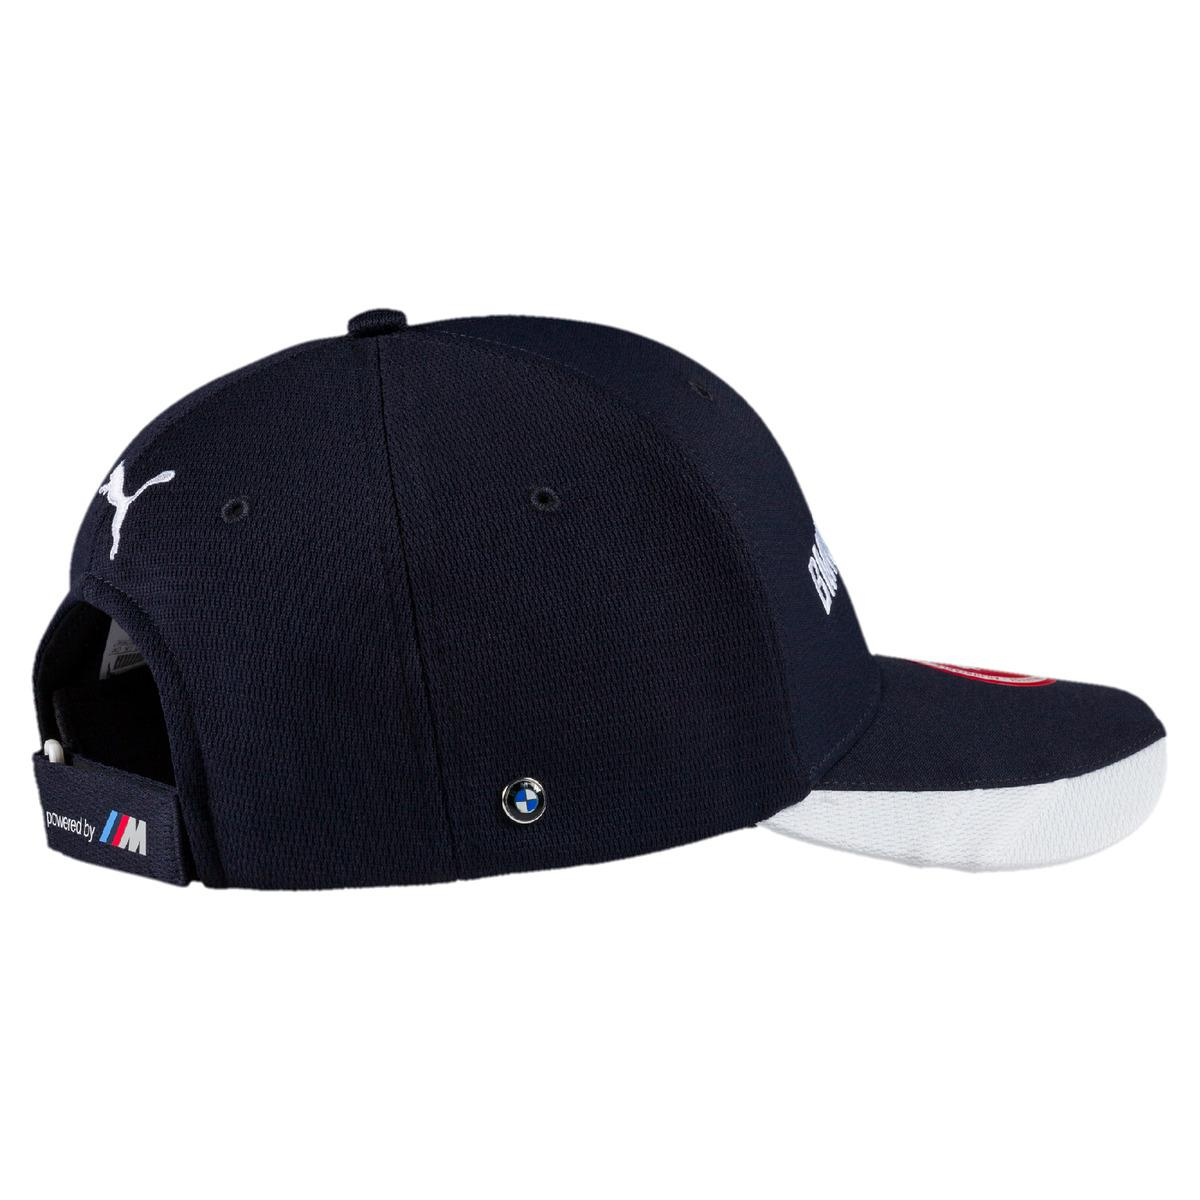 Lyst - PUMA Bmw Mts Sharknose Cap in Blue for Men 12ae07869b52